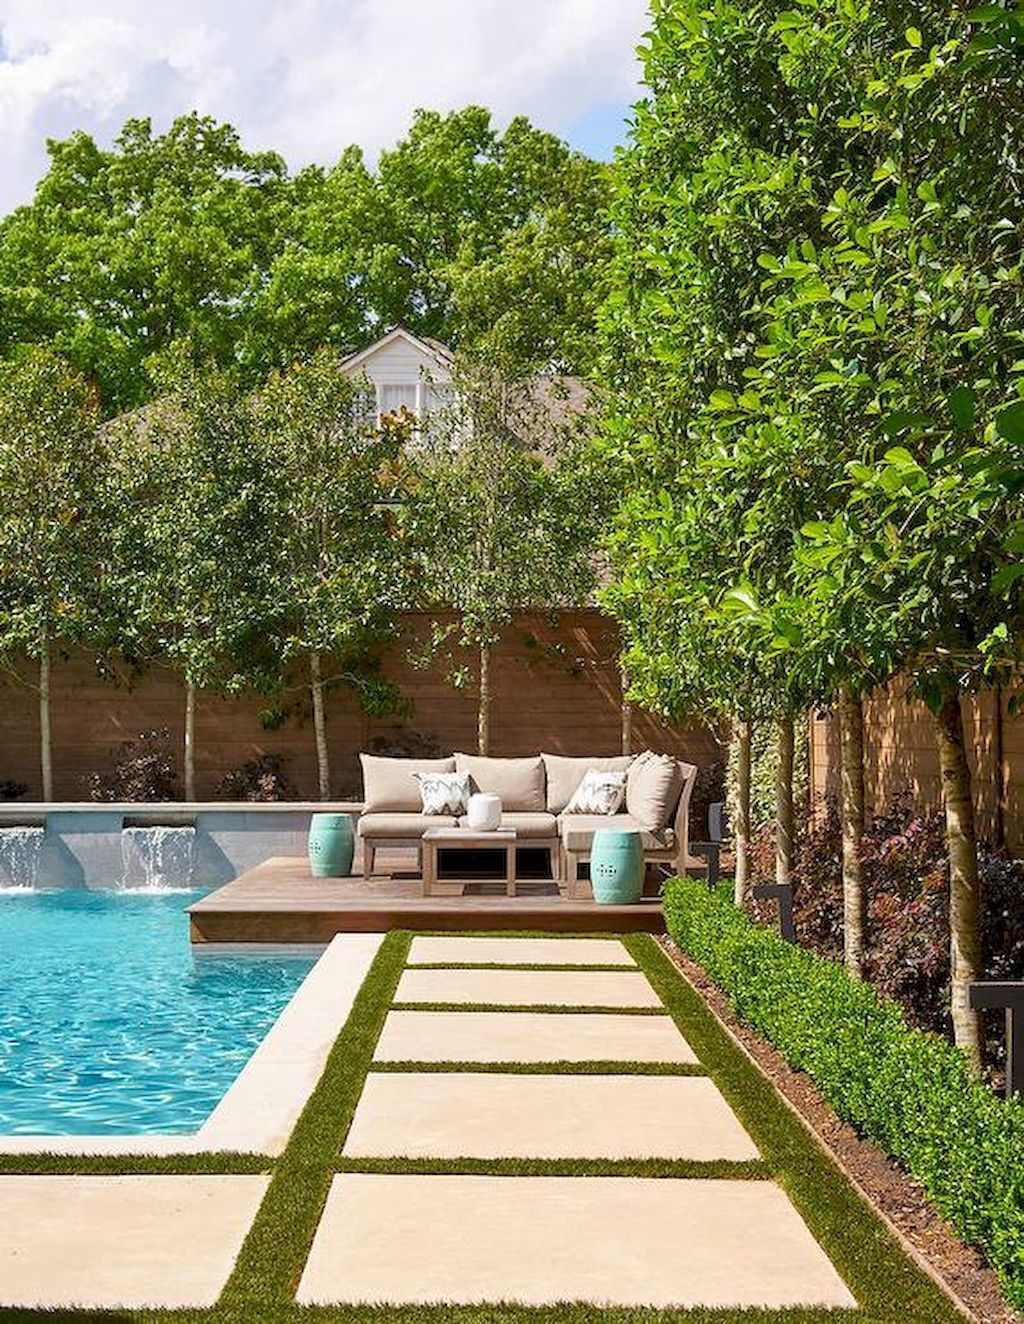 Pin by sati sharon on home decor in 2019 backyard pool - Backyard pool ideas on a budget ...